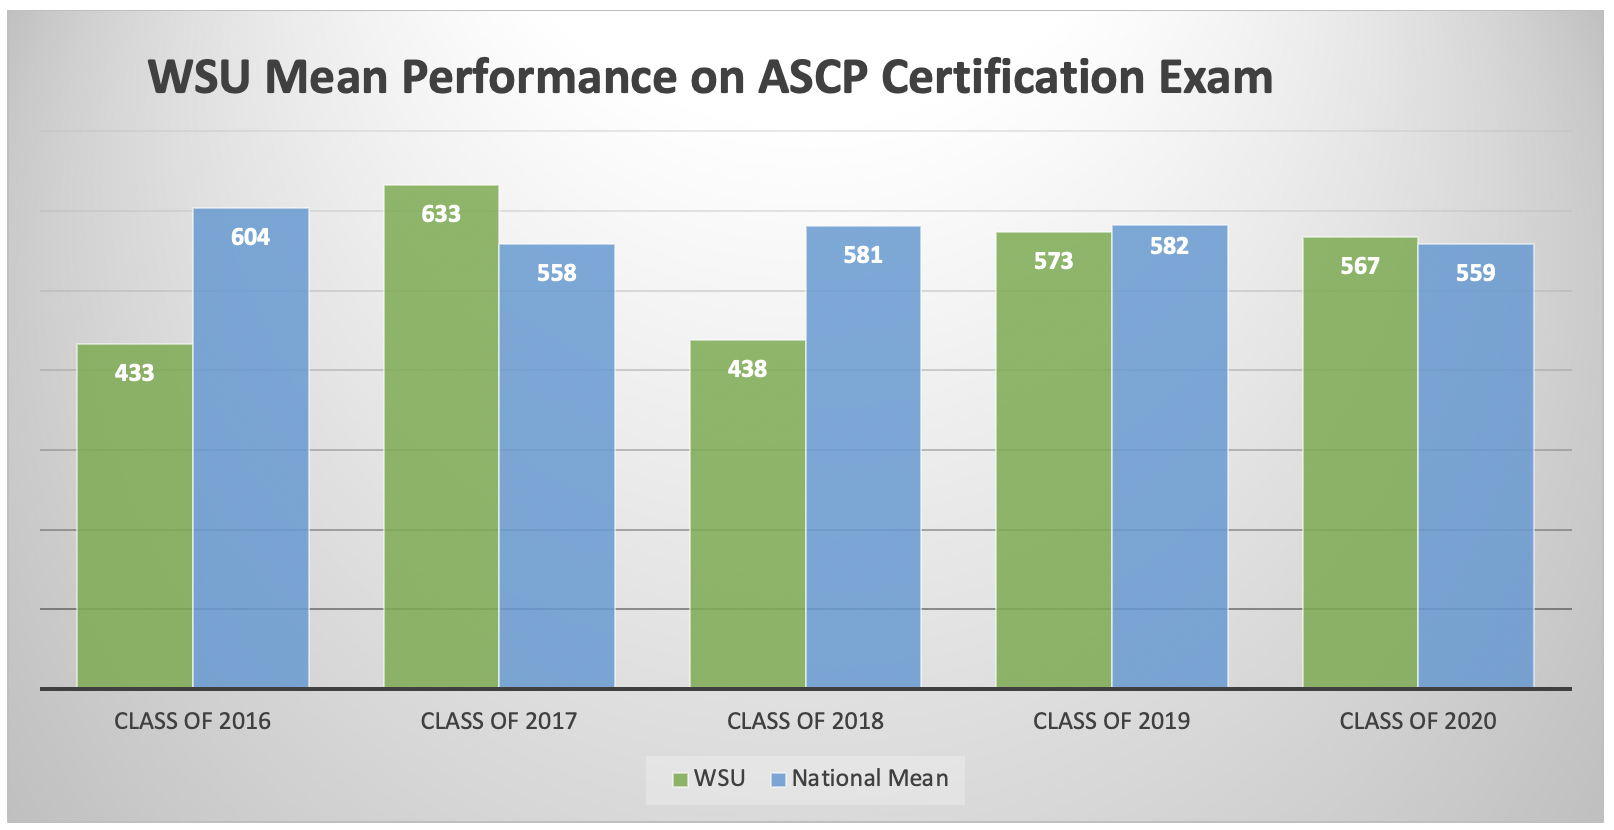 WSU Student Performance on ASCP Certification Exam Scores